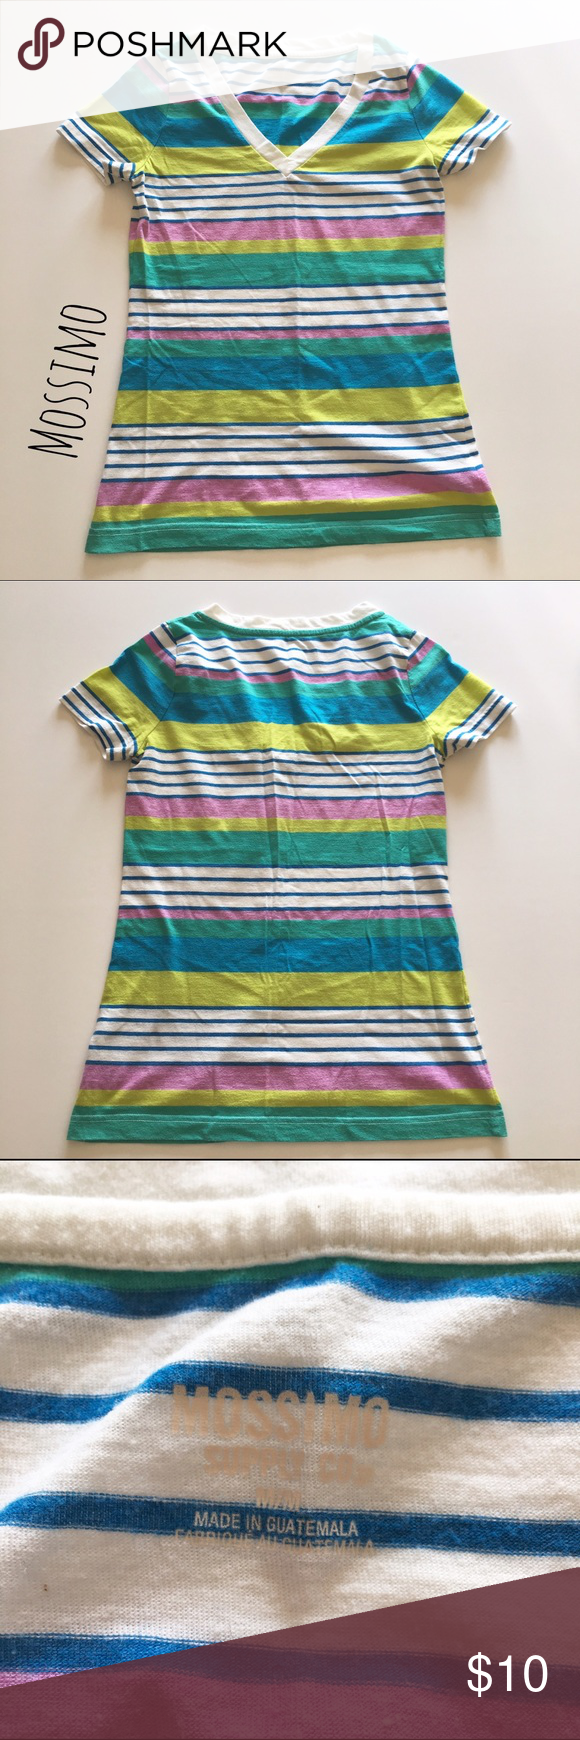 """Multi Colored Striped Tee Brightly colored striped tee by Merona. ▪️25"""" long ▪️13"""" shoulder to shoulder ▪️Soft & has stretch ▪️In great condition   🚭 Smoke-free home 📬 Ships by next day 💲 Price negotiable  🔁 Open to trades  💟Happy Poshing!💟 Merona Tops Tees - Short Sleeve"""